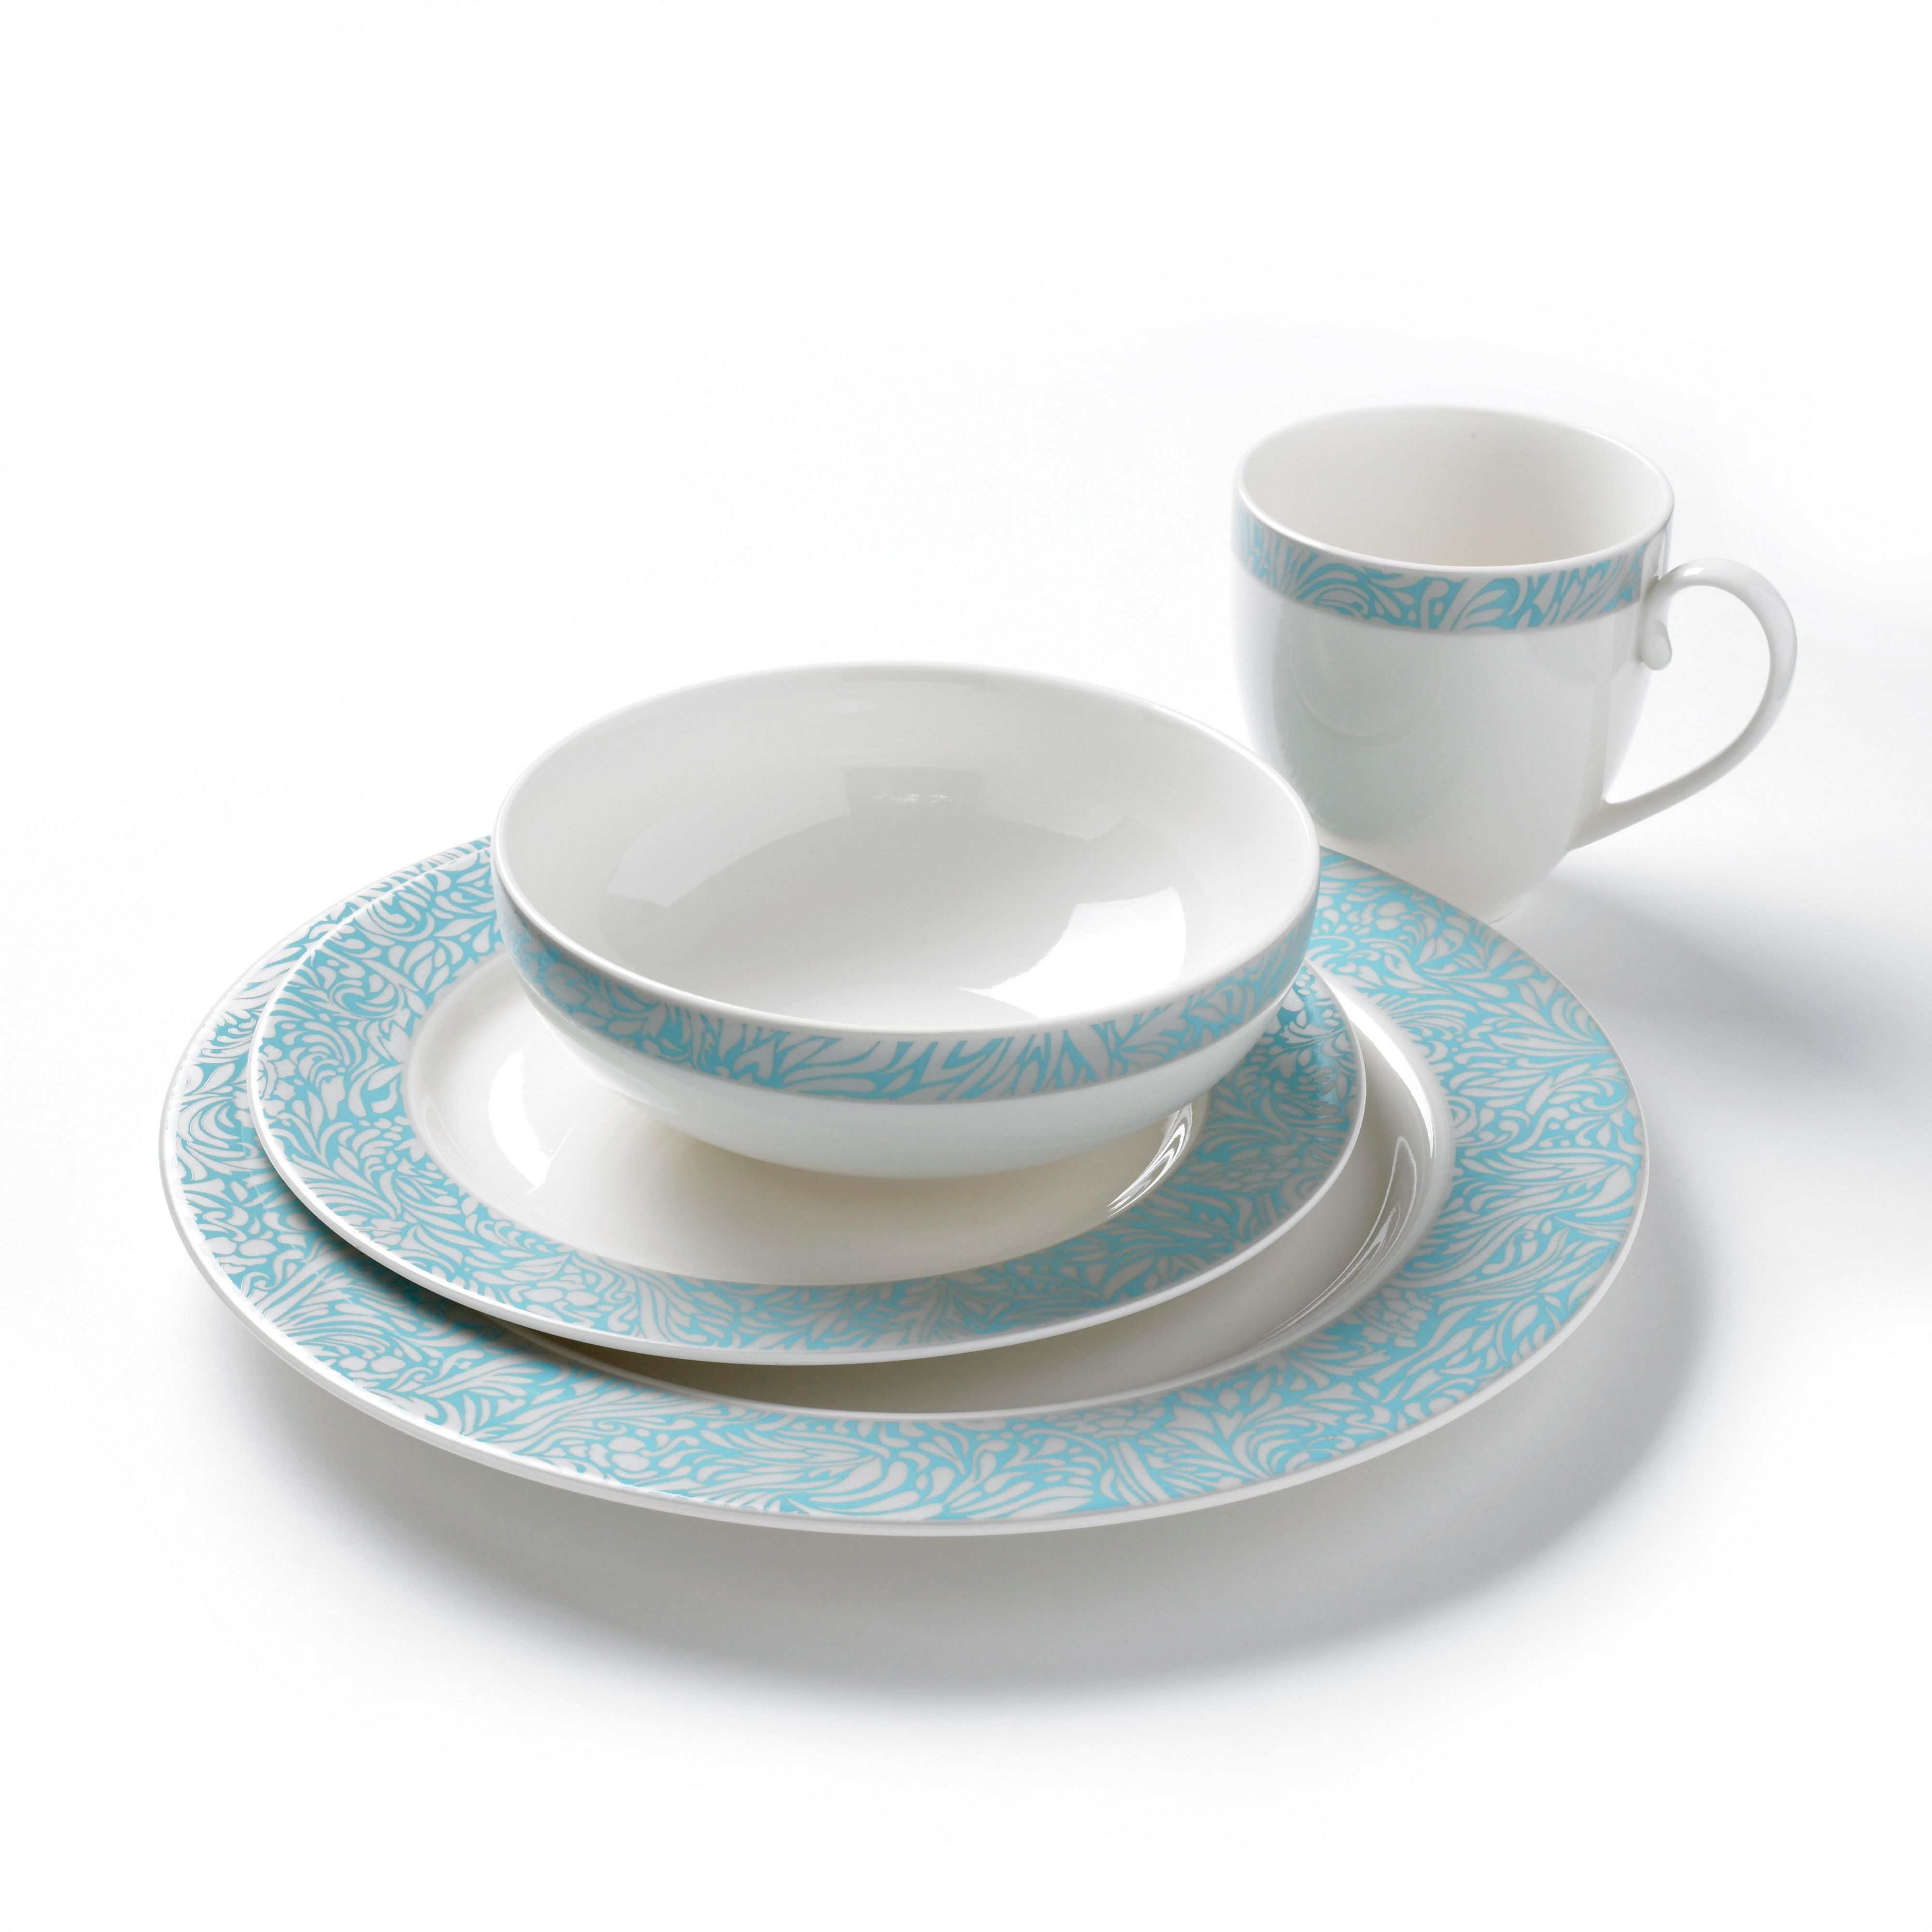 Monsoon Lucille dinnerware in teal